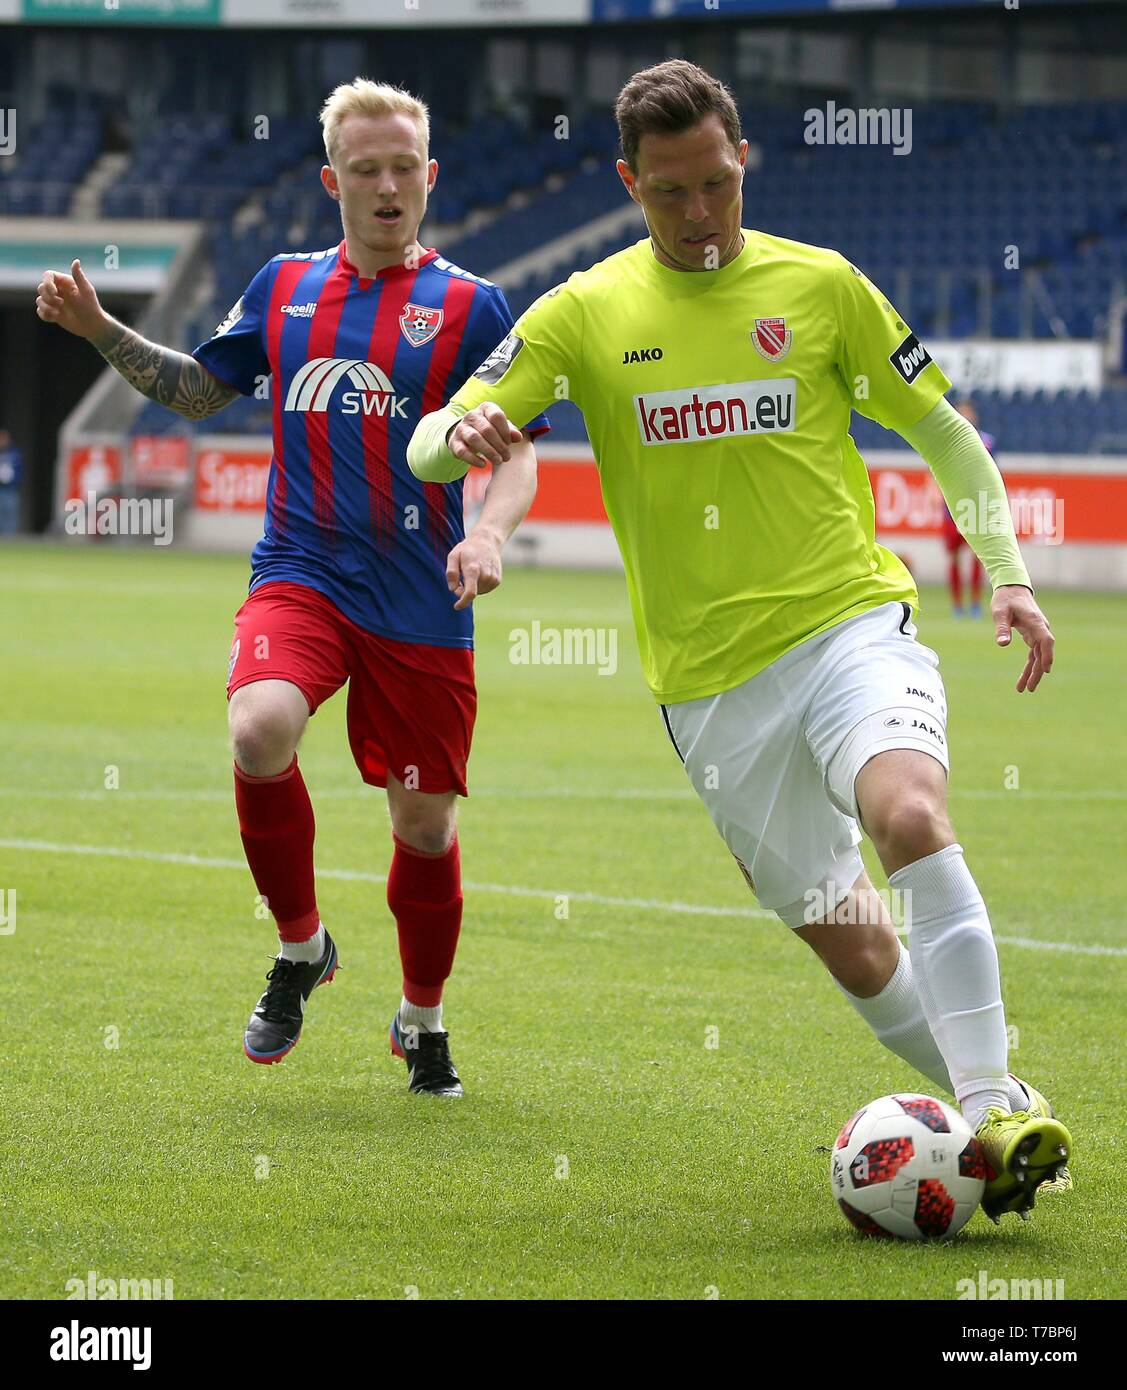 Duisburg, Deutschland. 05th May, 2019. firo: 05.05.2019 Football, 3. Bundesliga, season 2018/2019 KFC Uerdingen 05 - FC Energie Cottbus Robert MÃ_ller (# 16, FC Energie Cottbus) arrives in front of Patrick PflÃ'cke (# 10, KFC Uerdingen 05). | usage worldwide Credit: dpa/Alamy Live News - Stock Image